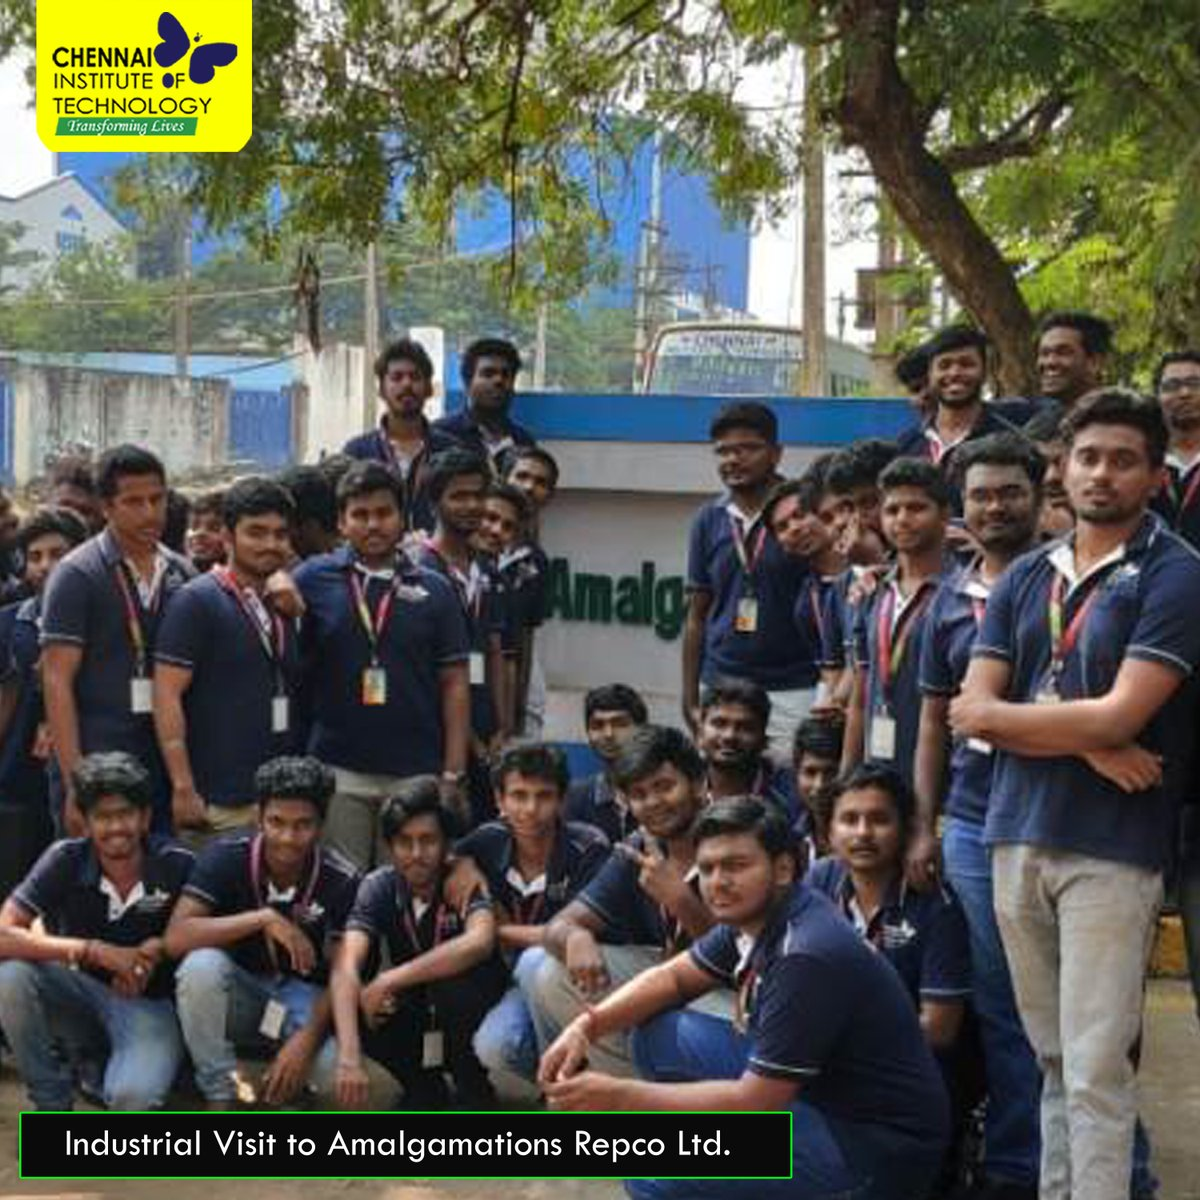 Industrial Visit to Amalgamations Repco Ltd. organised for Third Year Students by Department of Mechanical Engineering  #IndustryConnectedInstitute #IndustrialVisit #ChennaiInstituteofTechnology #CITChennai #TransformingLives #Engineering #enjoyableCampusLife #HappyCampuspic.twitter.com/VhY2nn9e1x